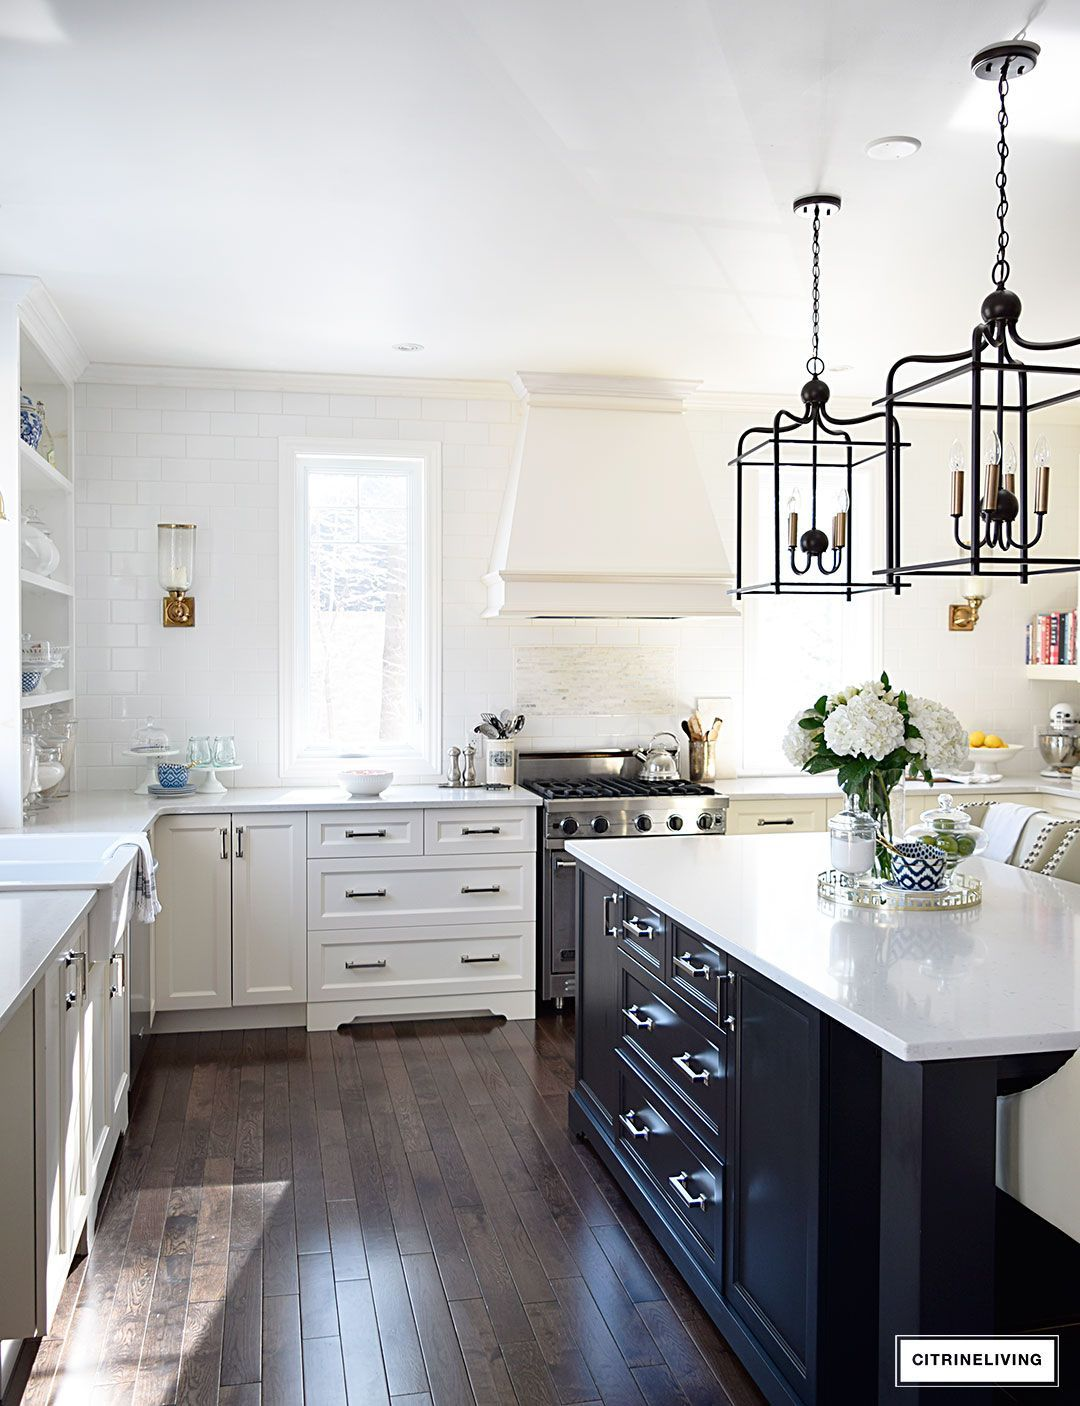 Spring in full swing home tour bright kitchens and open